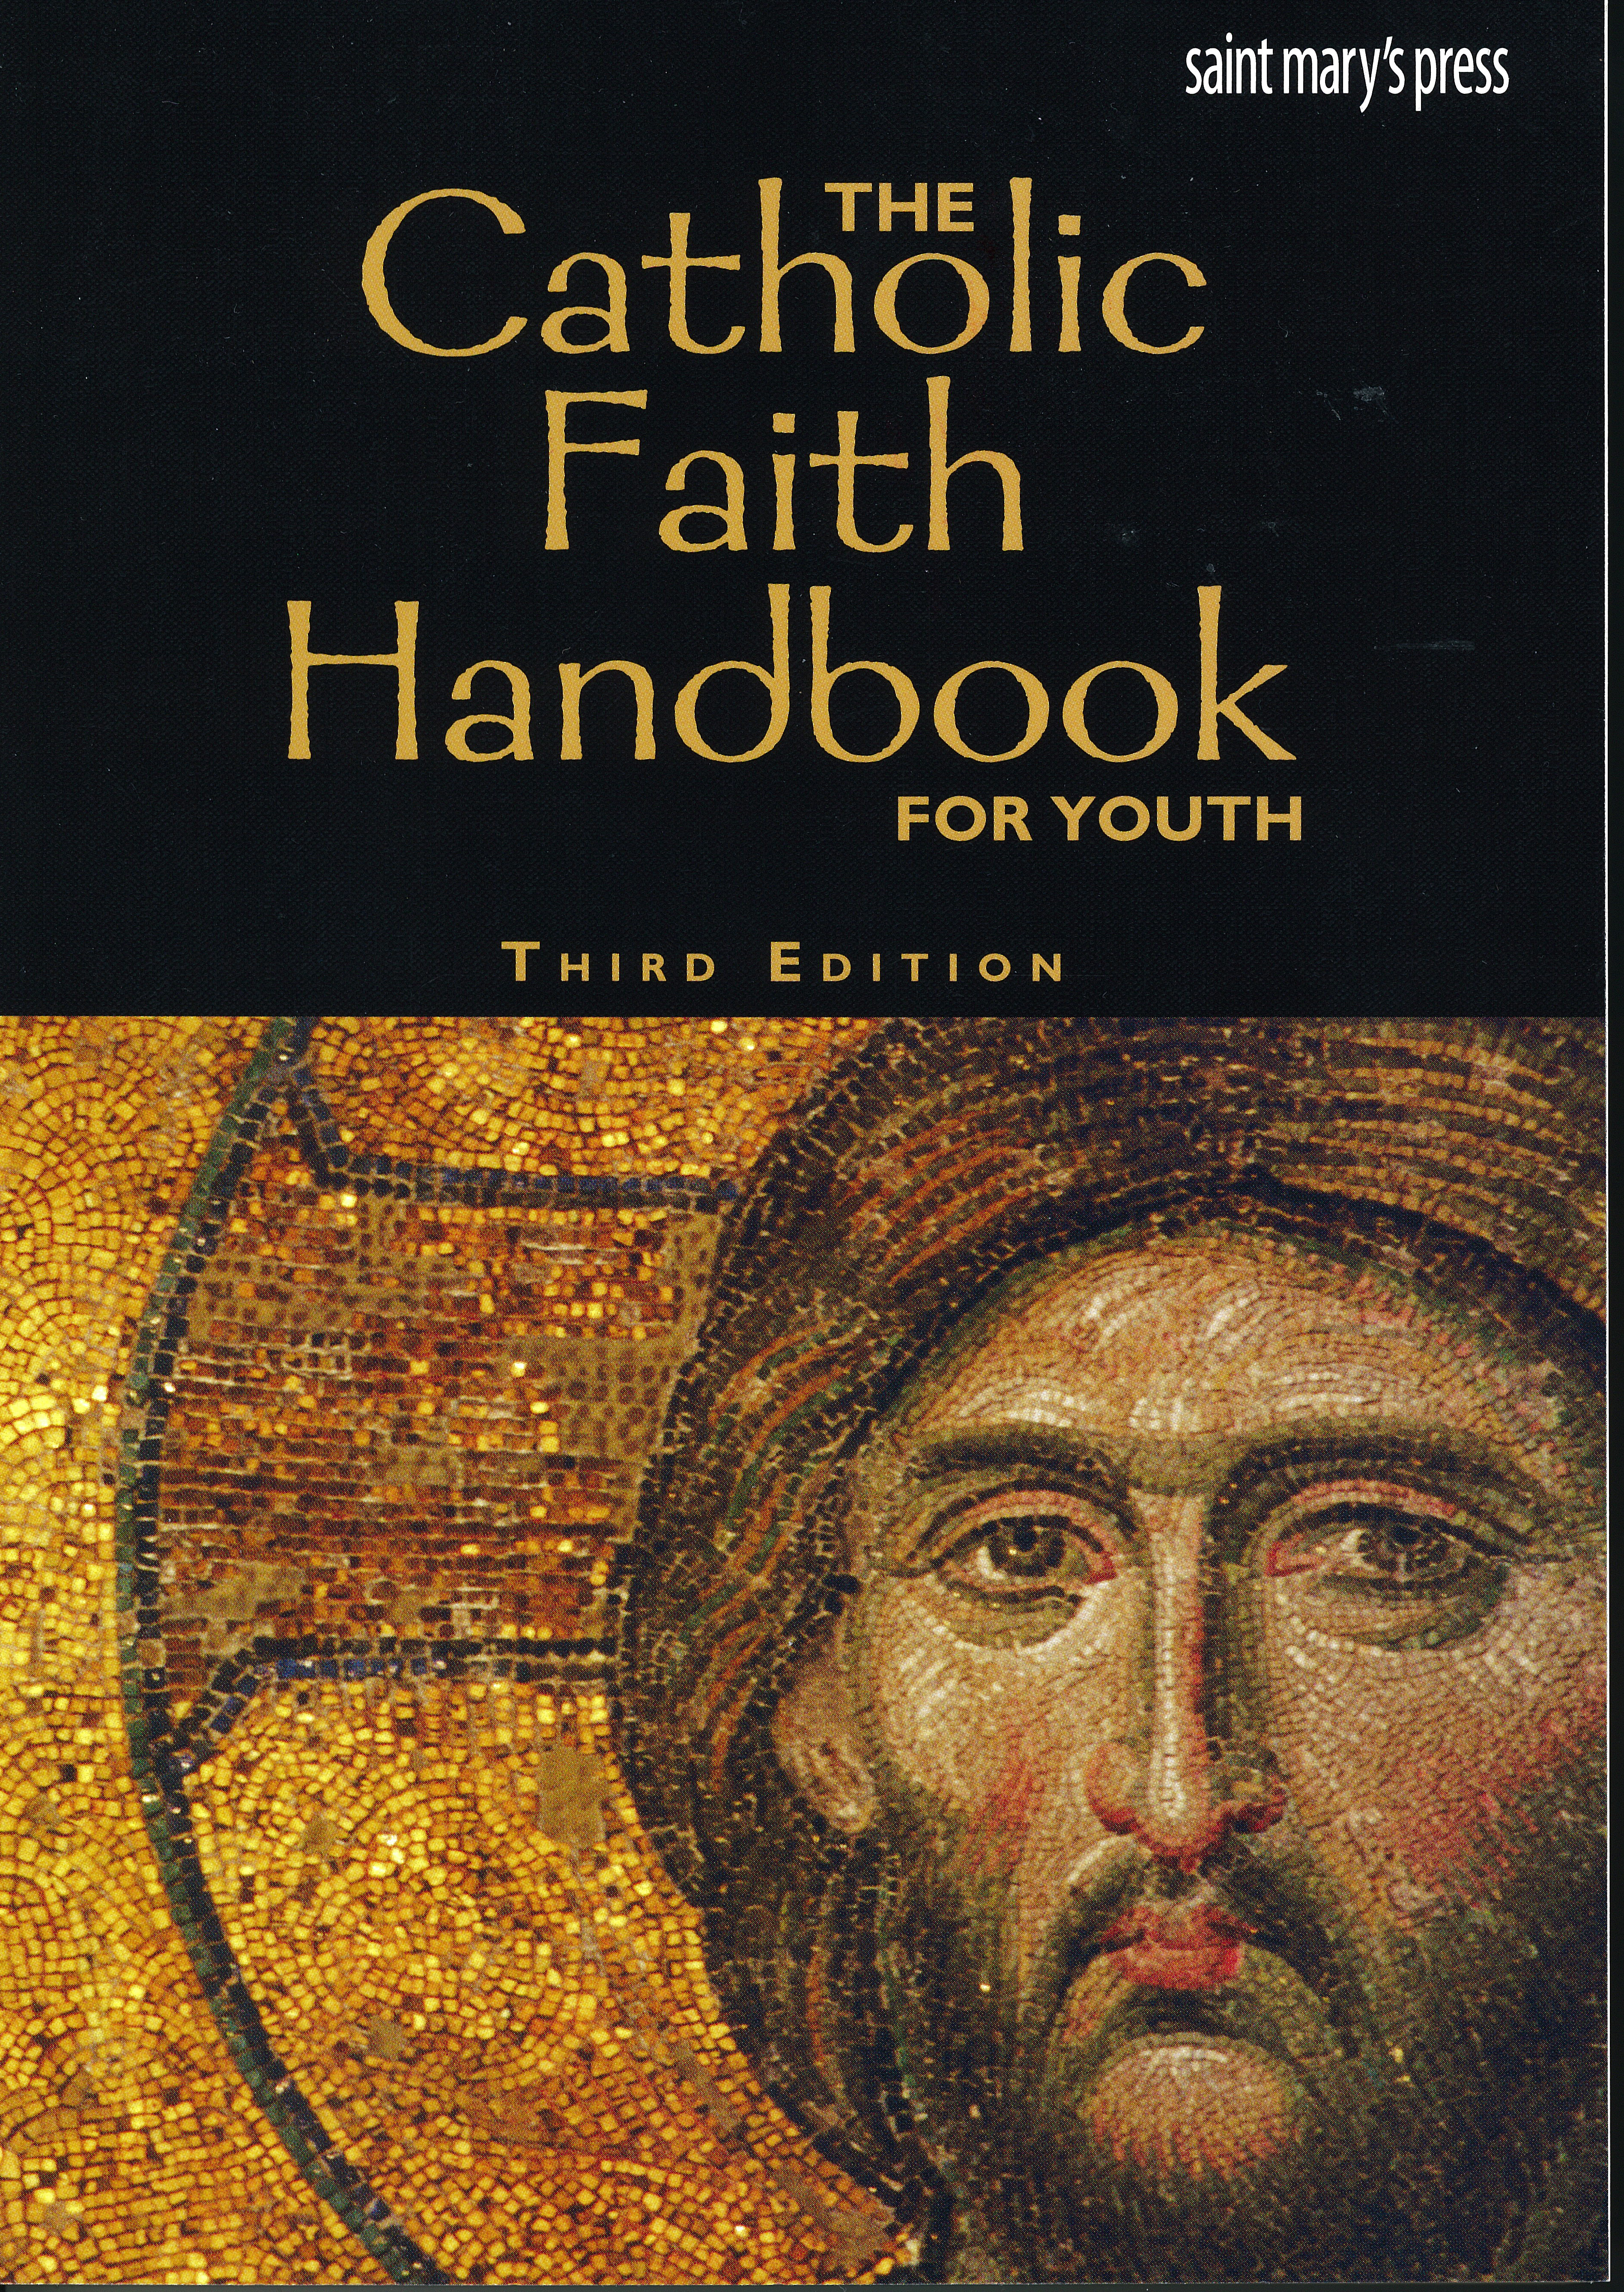 Catholic Faith Handbook for Youth, Third Edition 69-9781599821603